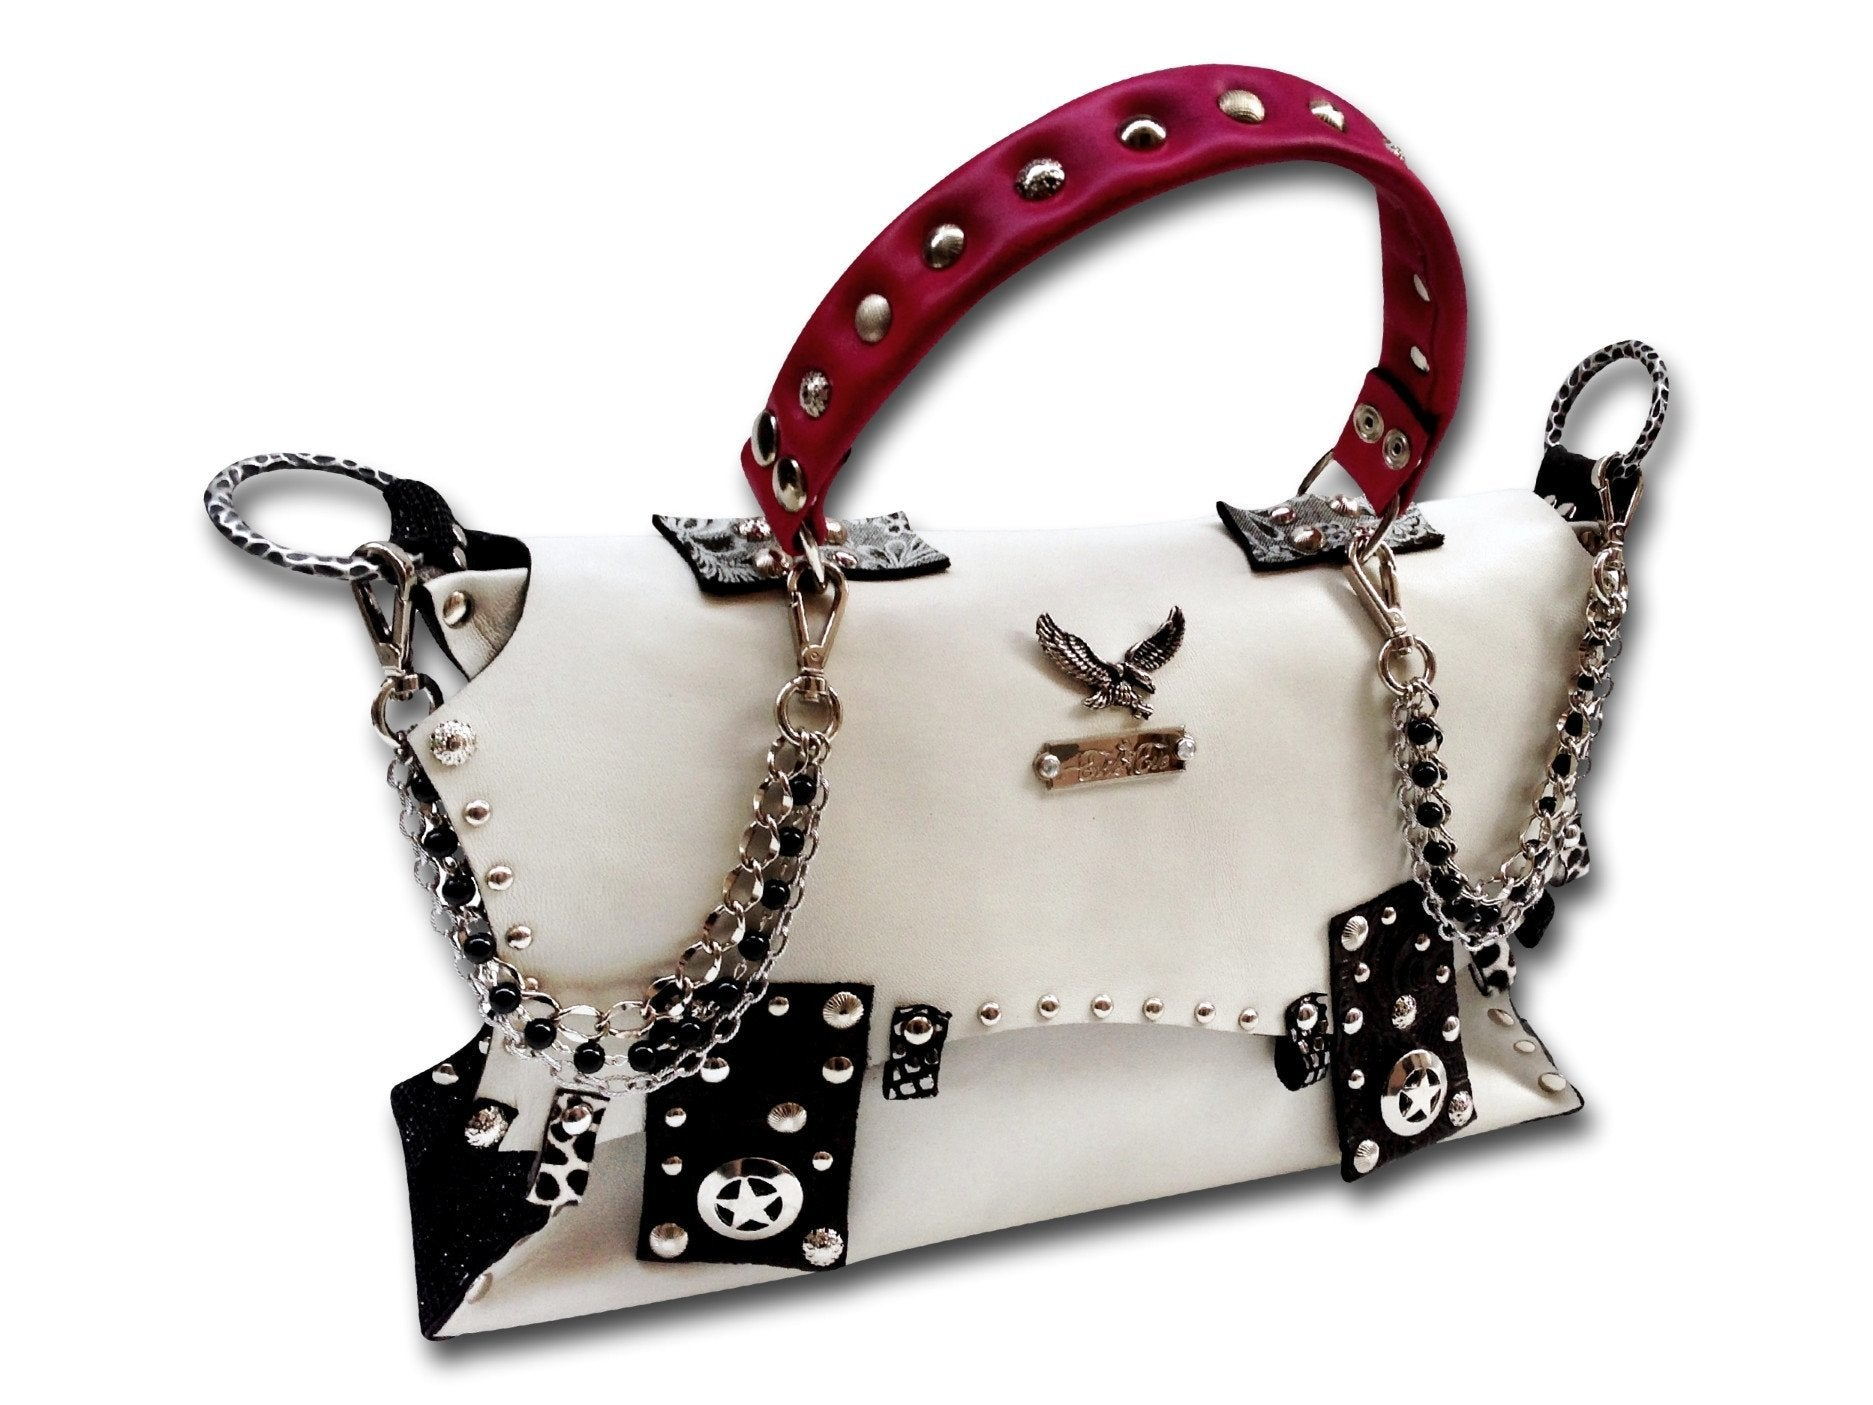 Handmade leather bag with pink handle (white/pink/black/silver)